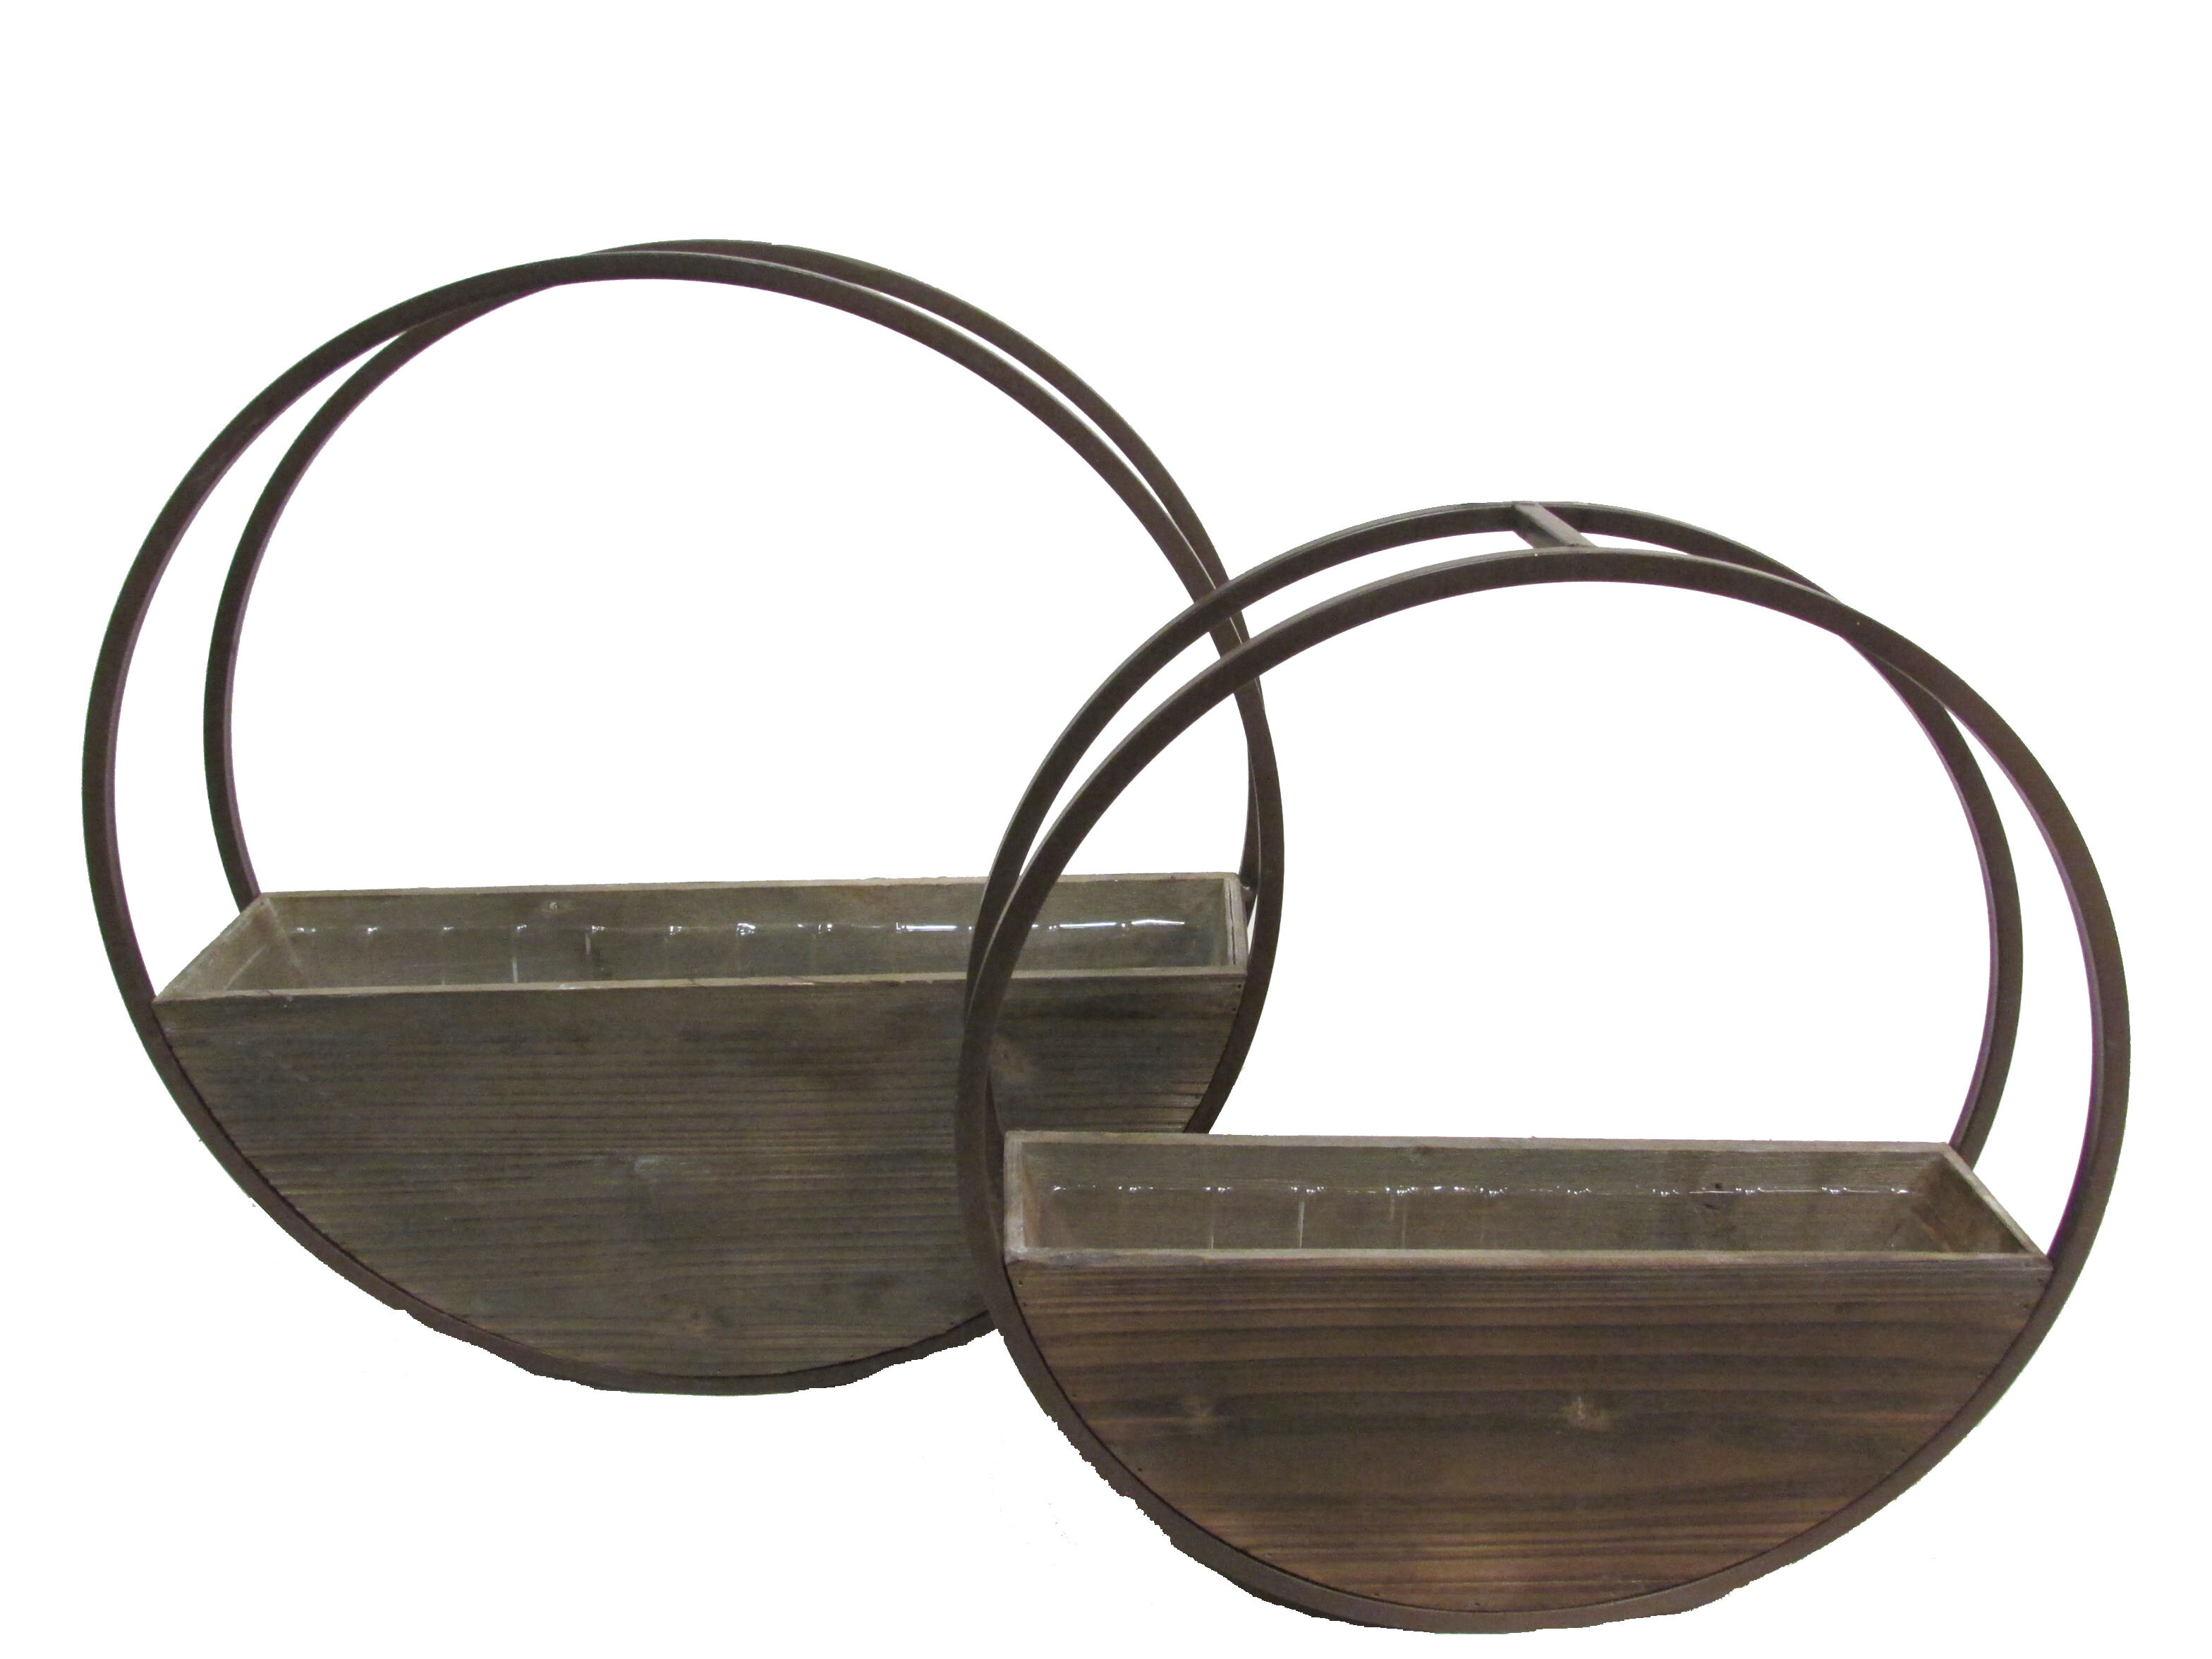 Union Rustic Aarush Round And Metal Framing Wall Hanging 2 Piece